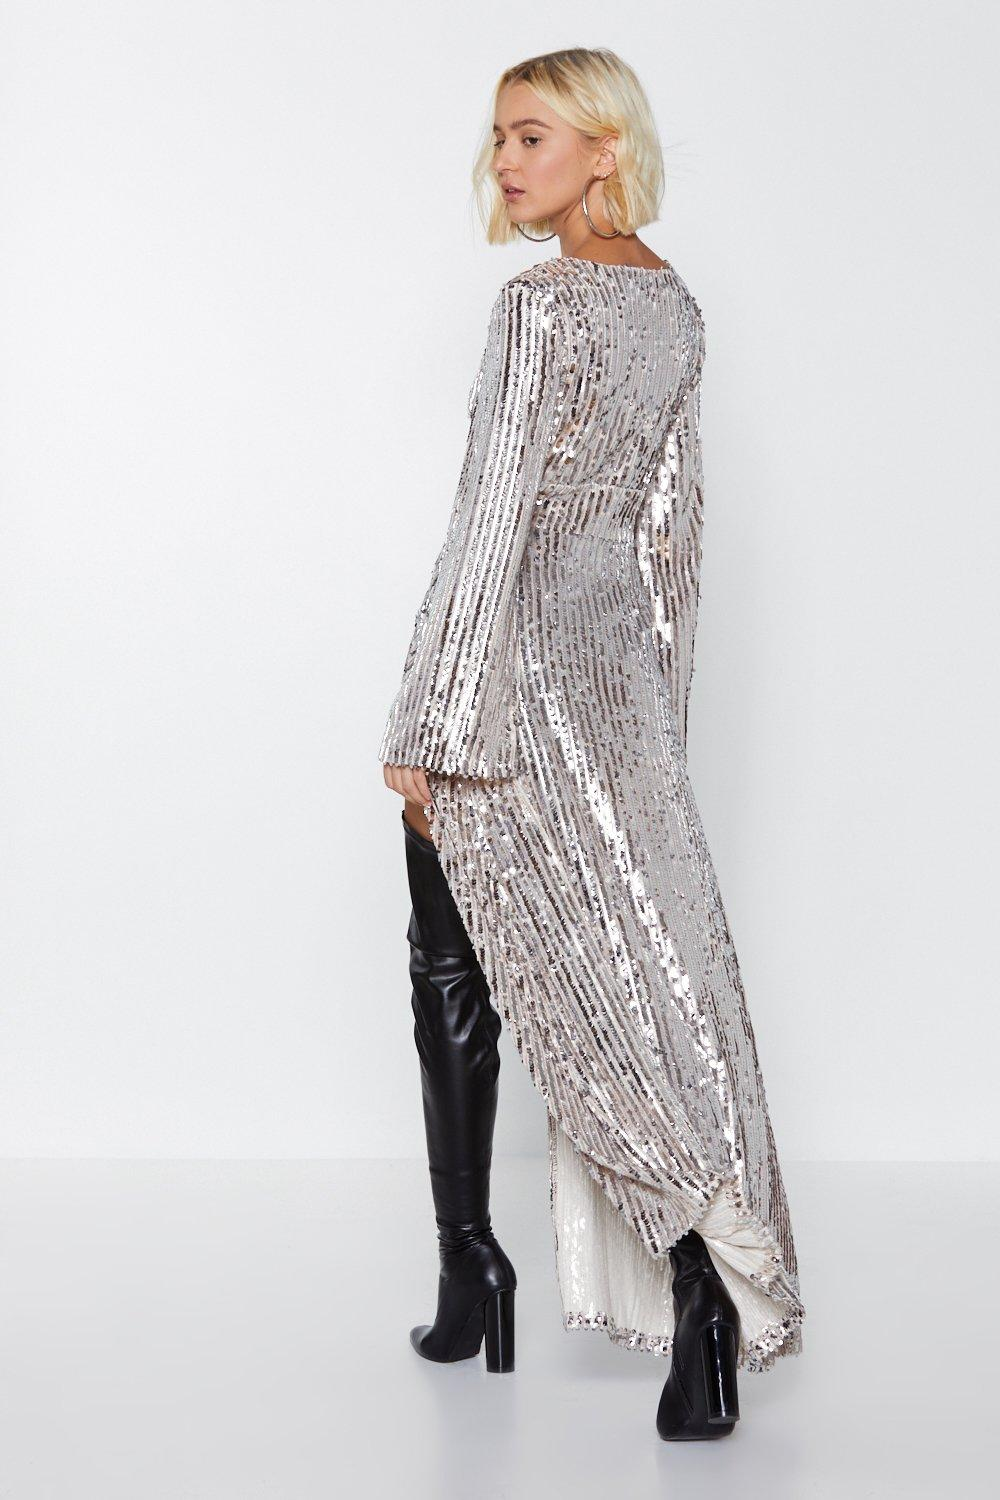 42ade60a51dbf Nasty Gal Studio Longline at the Bar Sequin Top